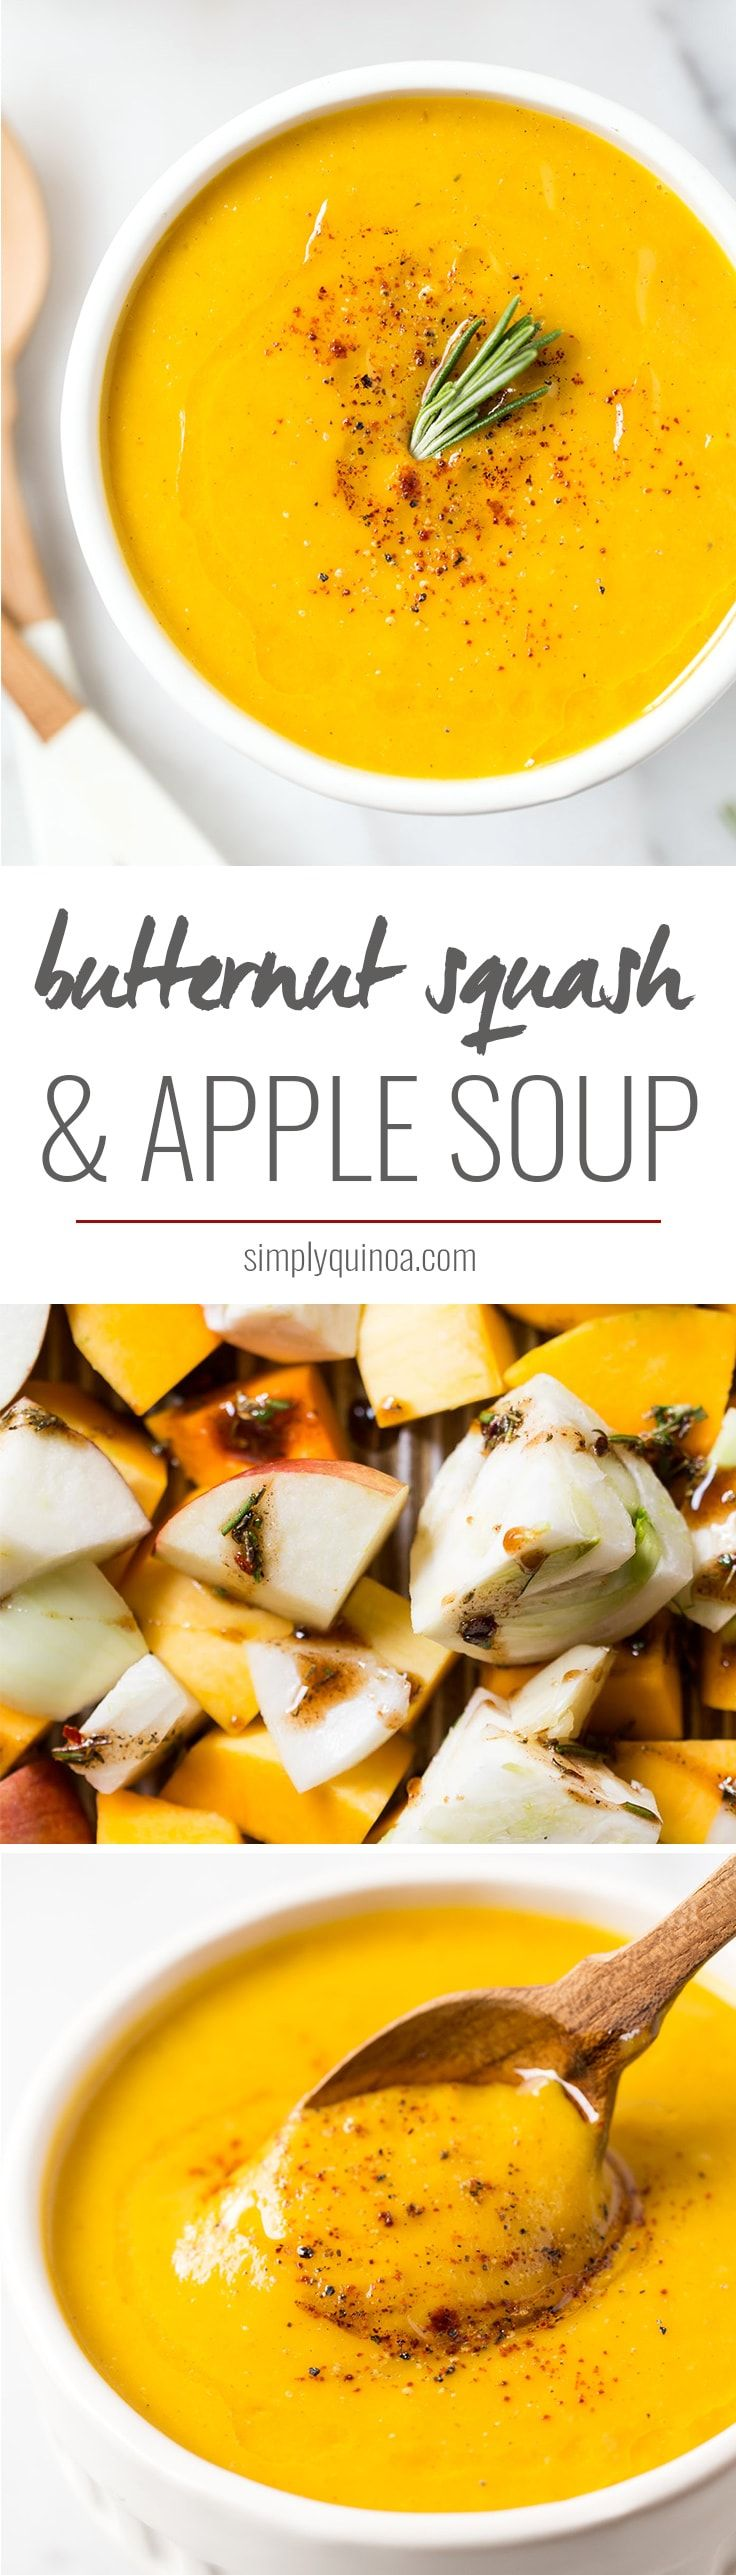 how to make apple soup